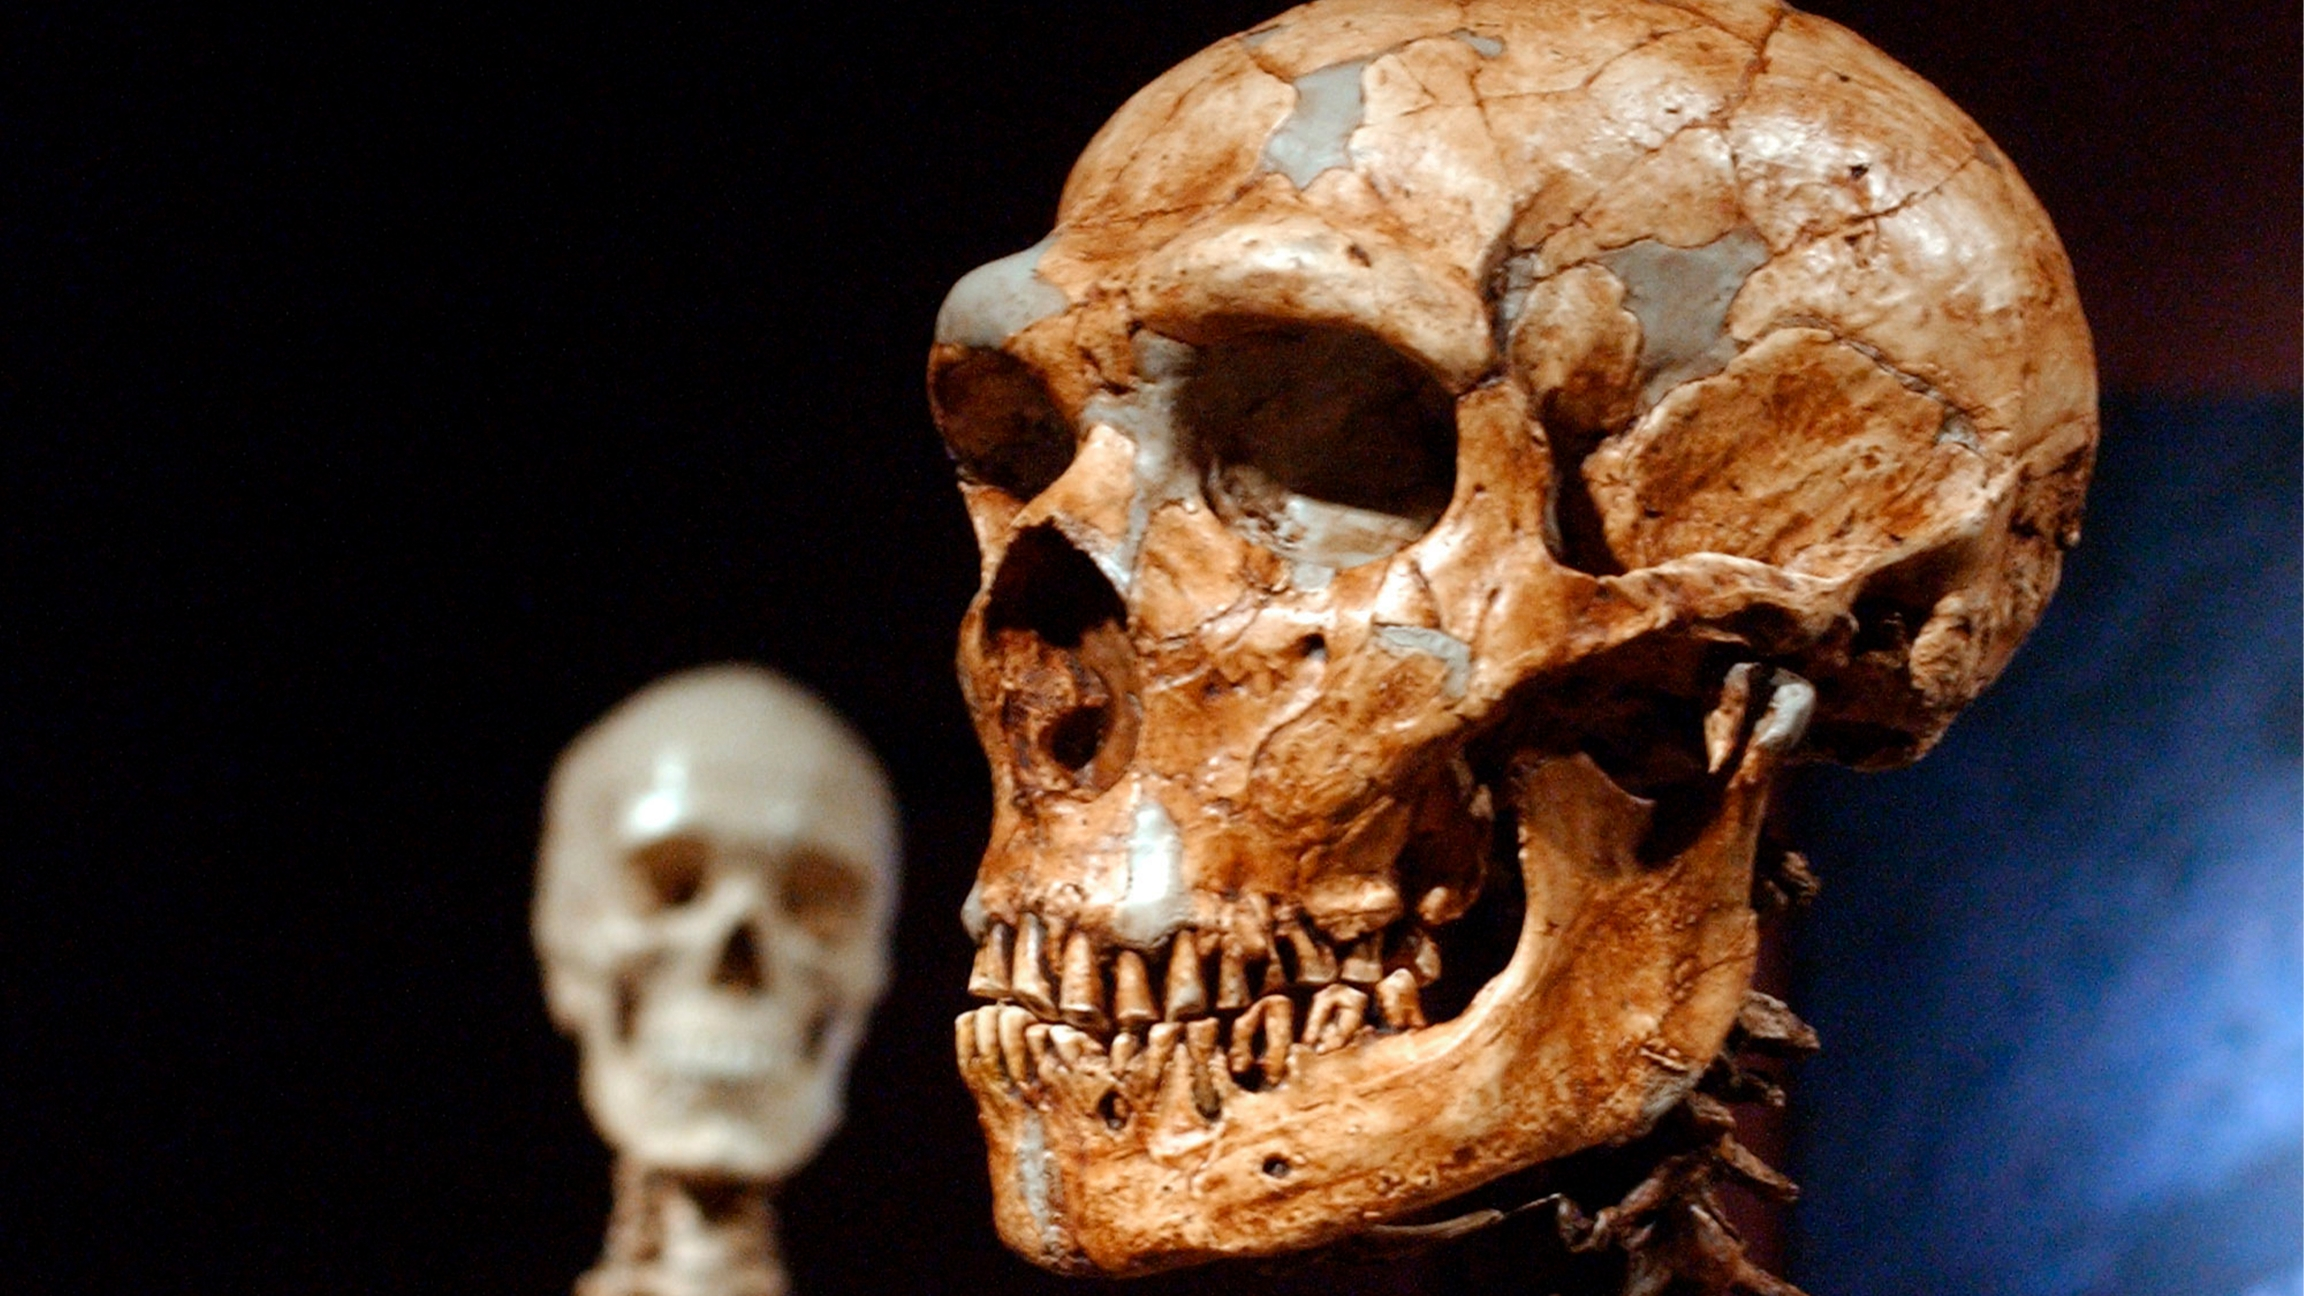 A reconstructed Neanderthal skeleton, right, and a modern human skeleton on display at the Museum of Natural History in New York